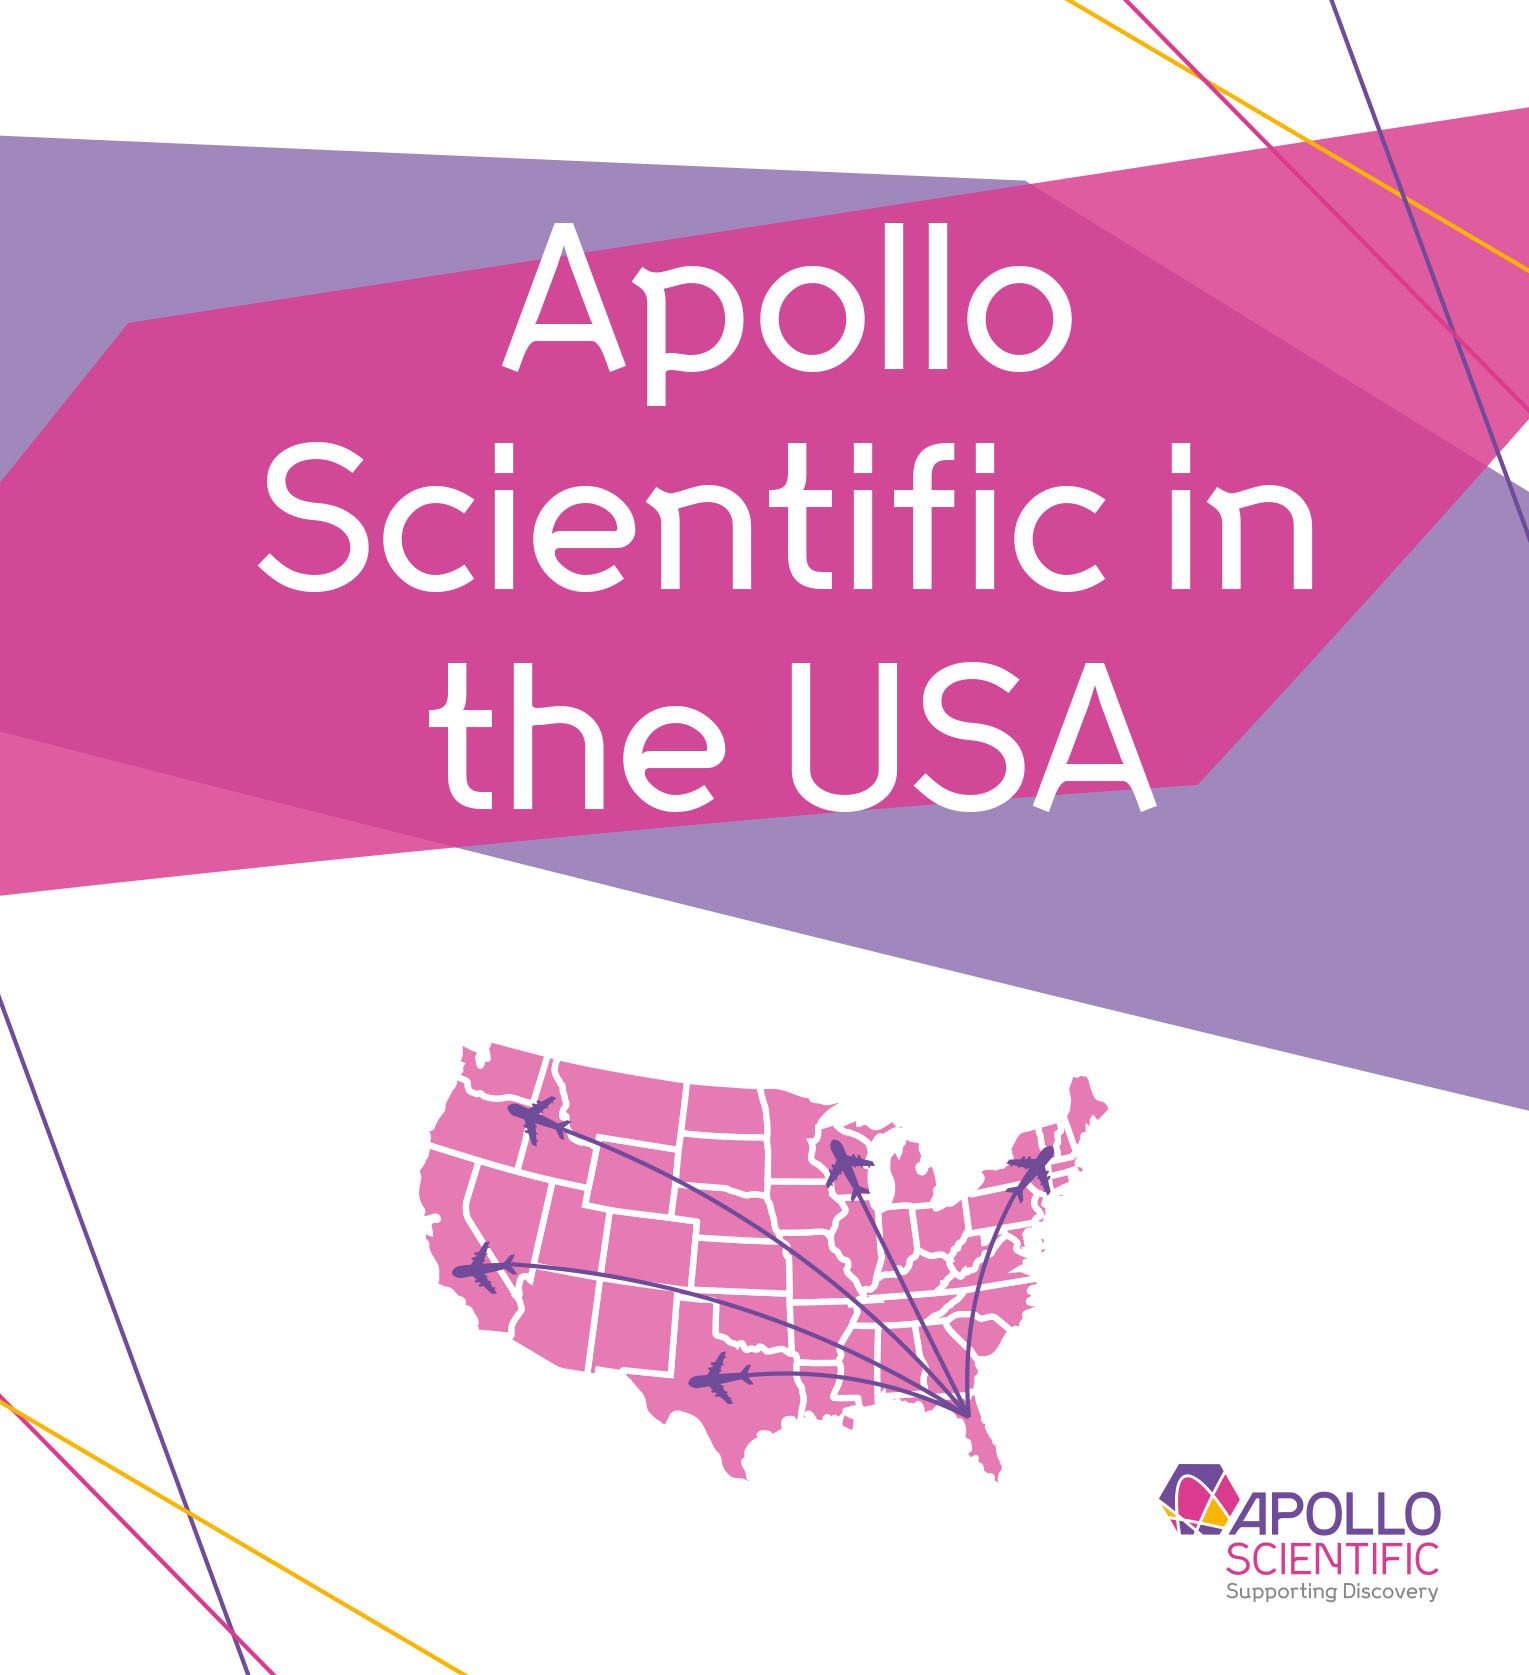 Apollo Scientific in the USA thumbnail image